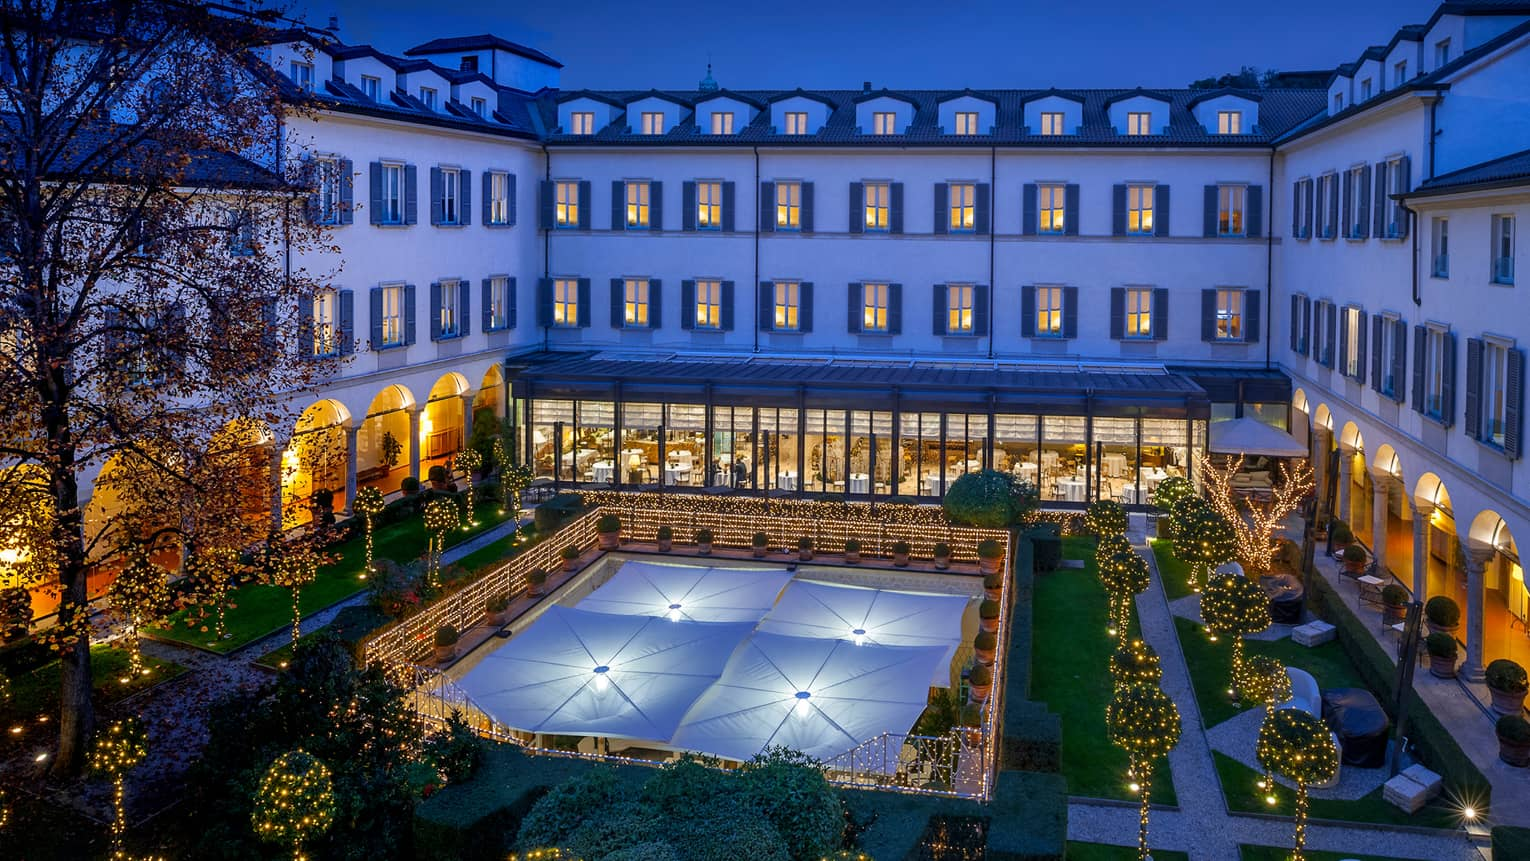 Four Seasons Hotel Milan 15th-century cloistered courtyard, gardens, lights at night